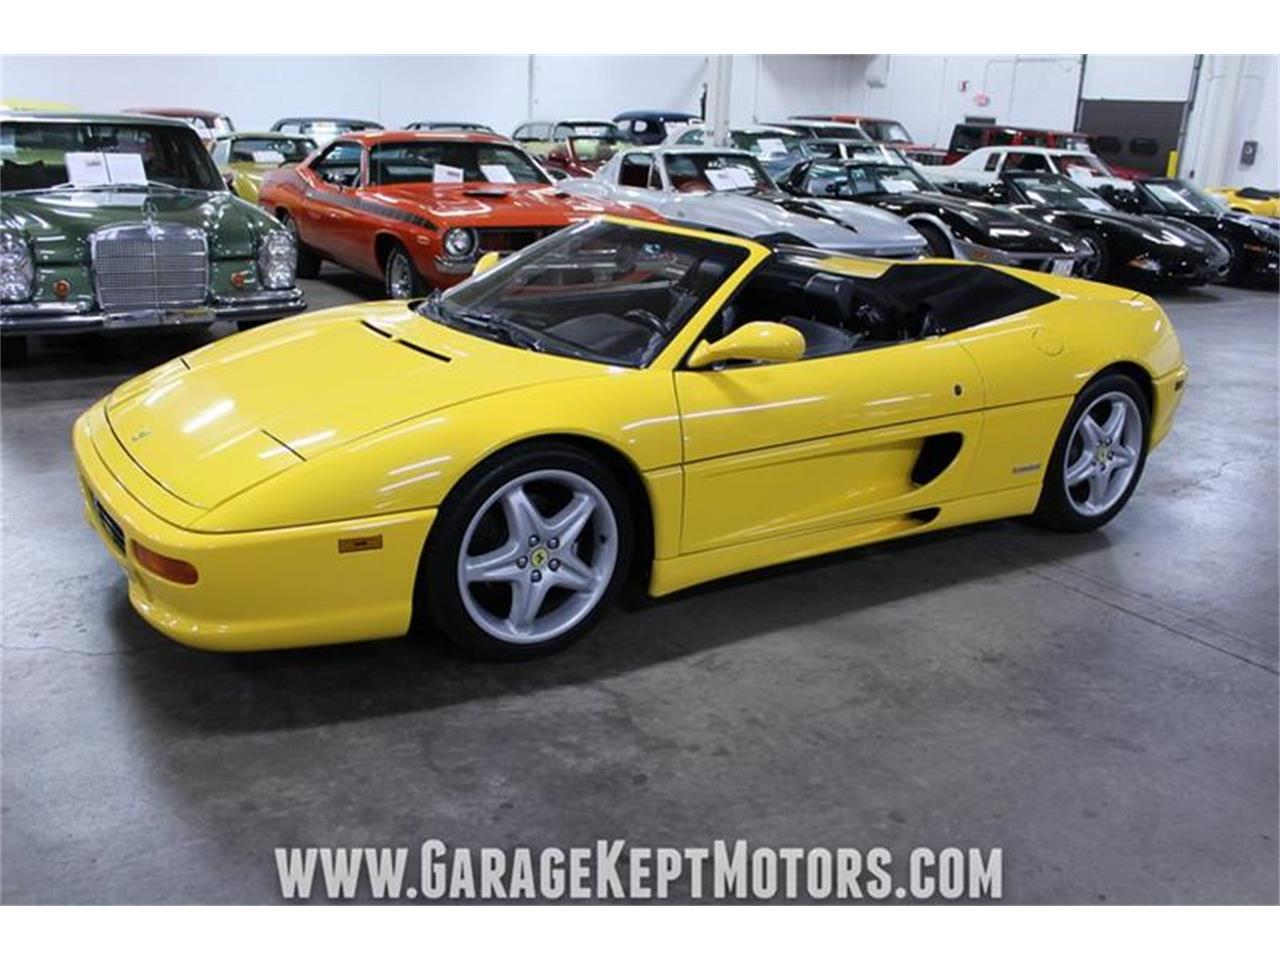 Large Picture of 1997 Ferrari F355 located in Grand Rapids Michigan - $59,900.00 - PWXC